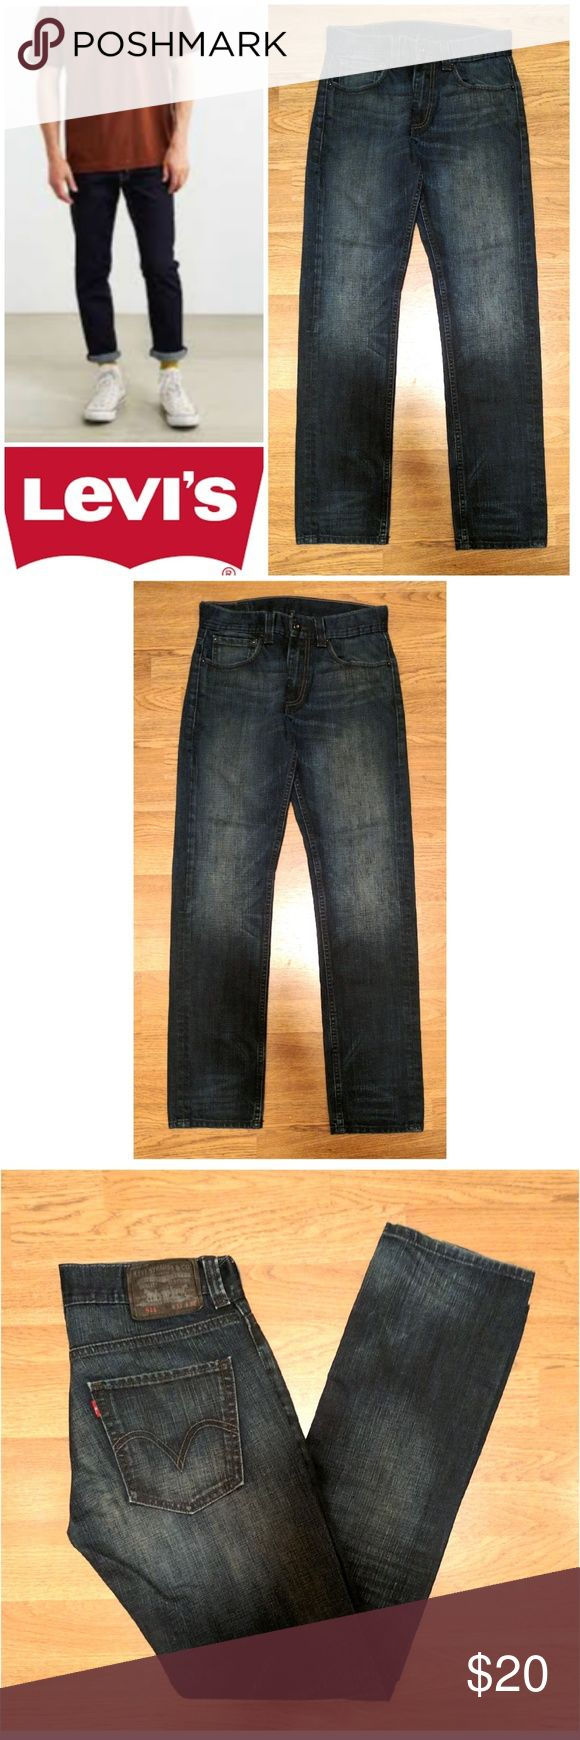 """Levi's 511 Slim Straight jeans These awesome Levi's 511 slim fit jeans are perfect for dressing on any occasion! Dark indigo 100% cotton denim wash, traditional 5 pocket style leather logo tag on back. Levi's 511 slim fit. Size w 31, 32"""" length, model shows fit only. Dress up or down with sneakers and tees, boots and button downs... Possibilities are endless! In EXCELLENT condition NO DAMAGES. Grab yours for less and look great in Levi's! Levi's Jeans"""